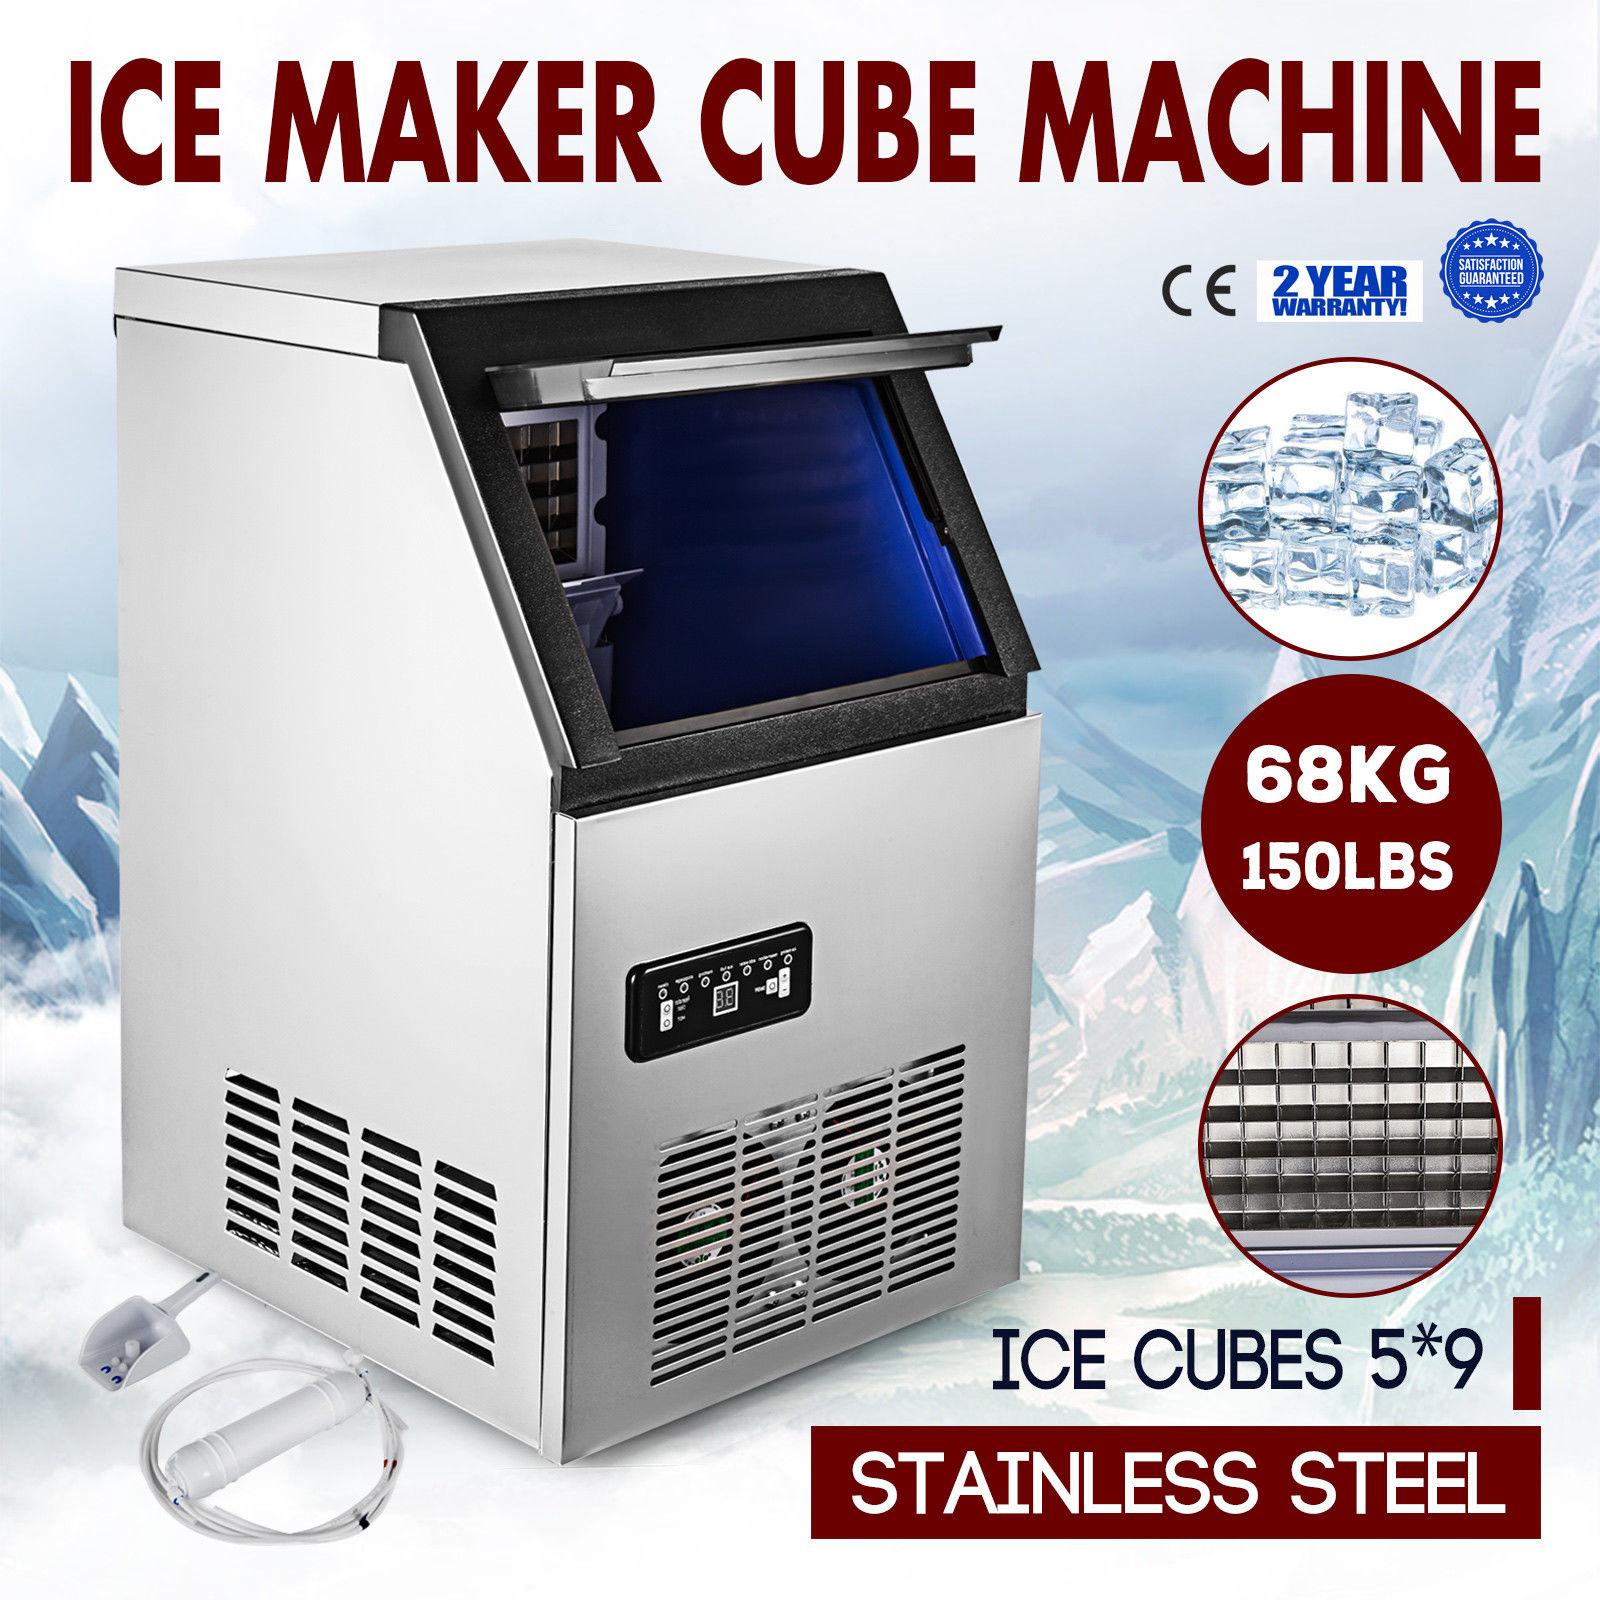 Stainless Steel Commercial Undercounter 150LBs Ice Making Machine Air Cooled Cube Safe And Environmental Friendly